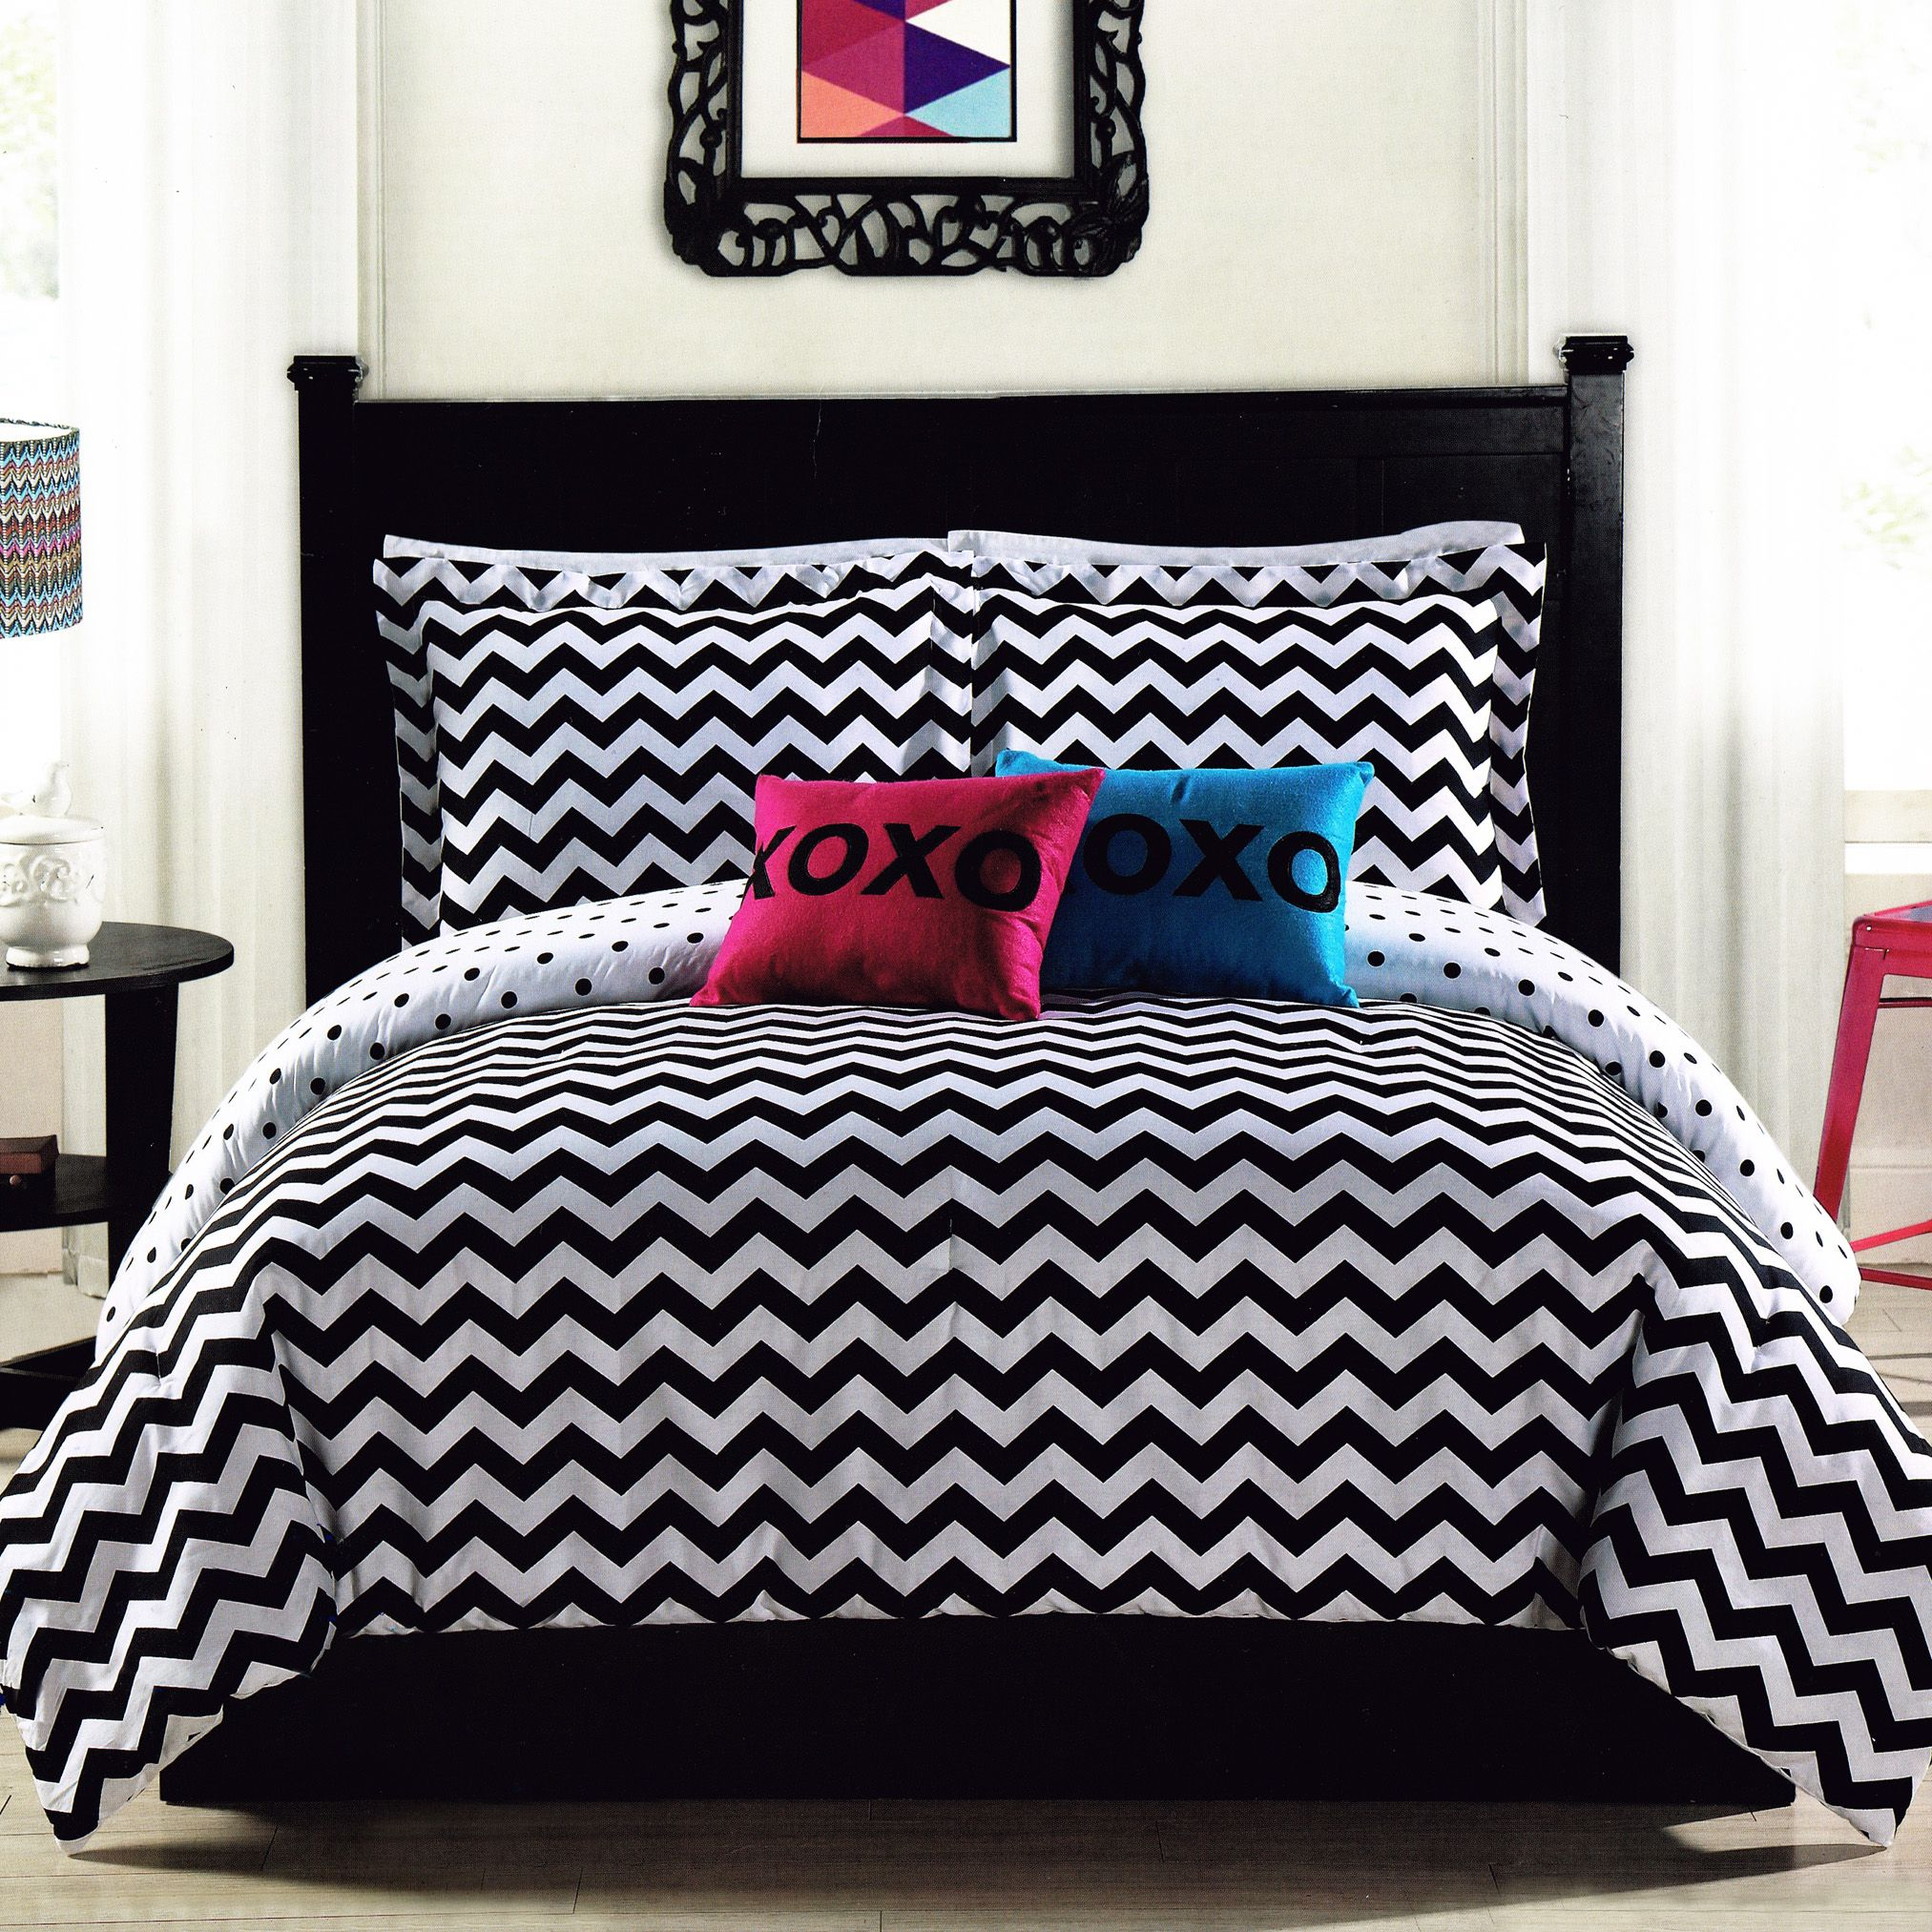 Black White Chevron forter Set Twin Full Queen Teen Girl Bedding